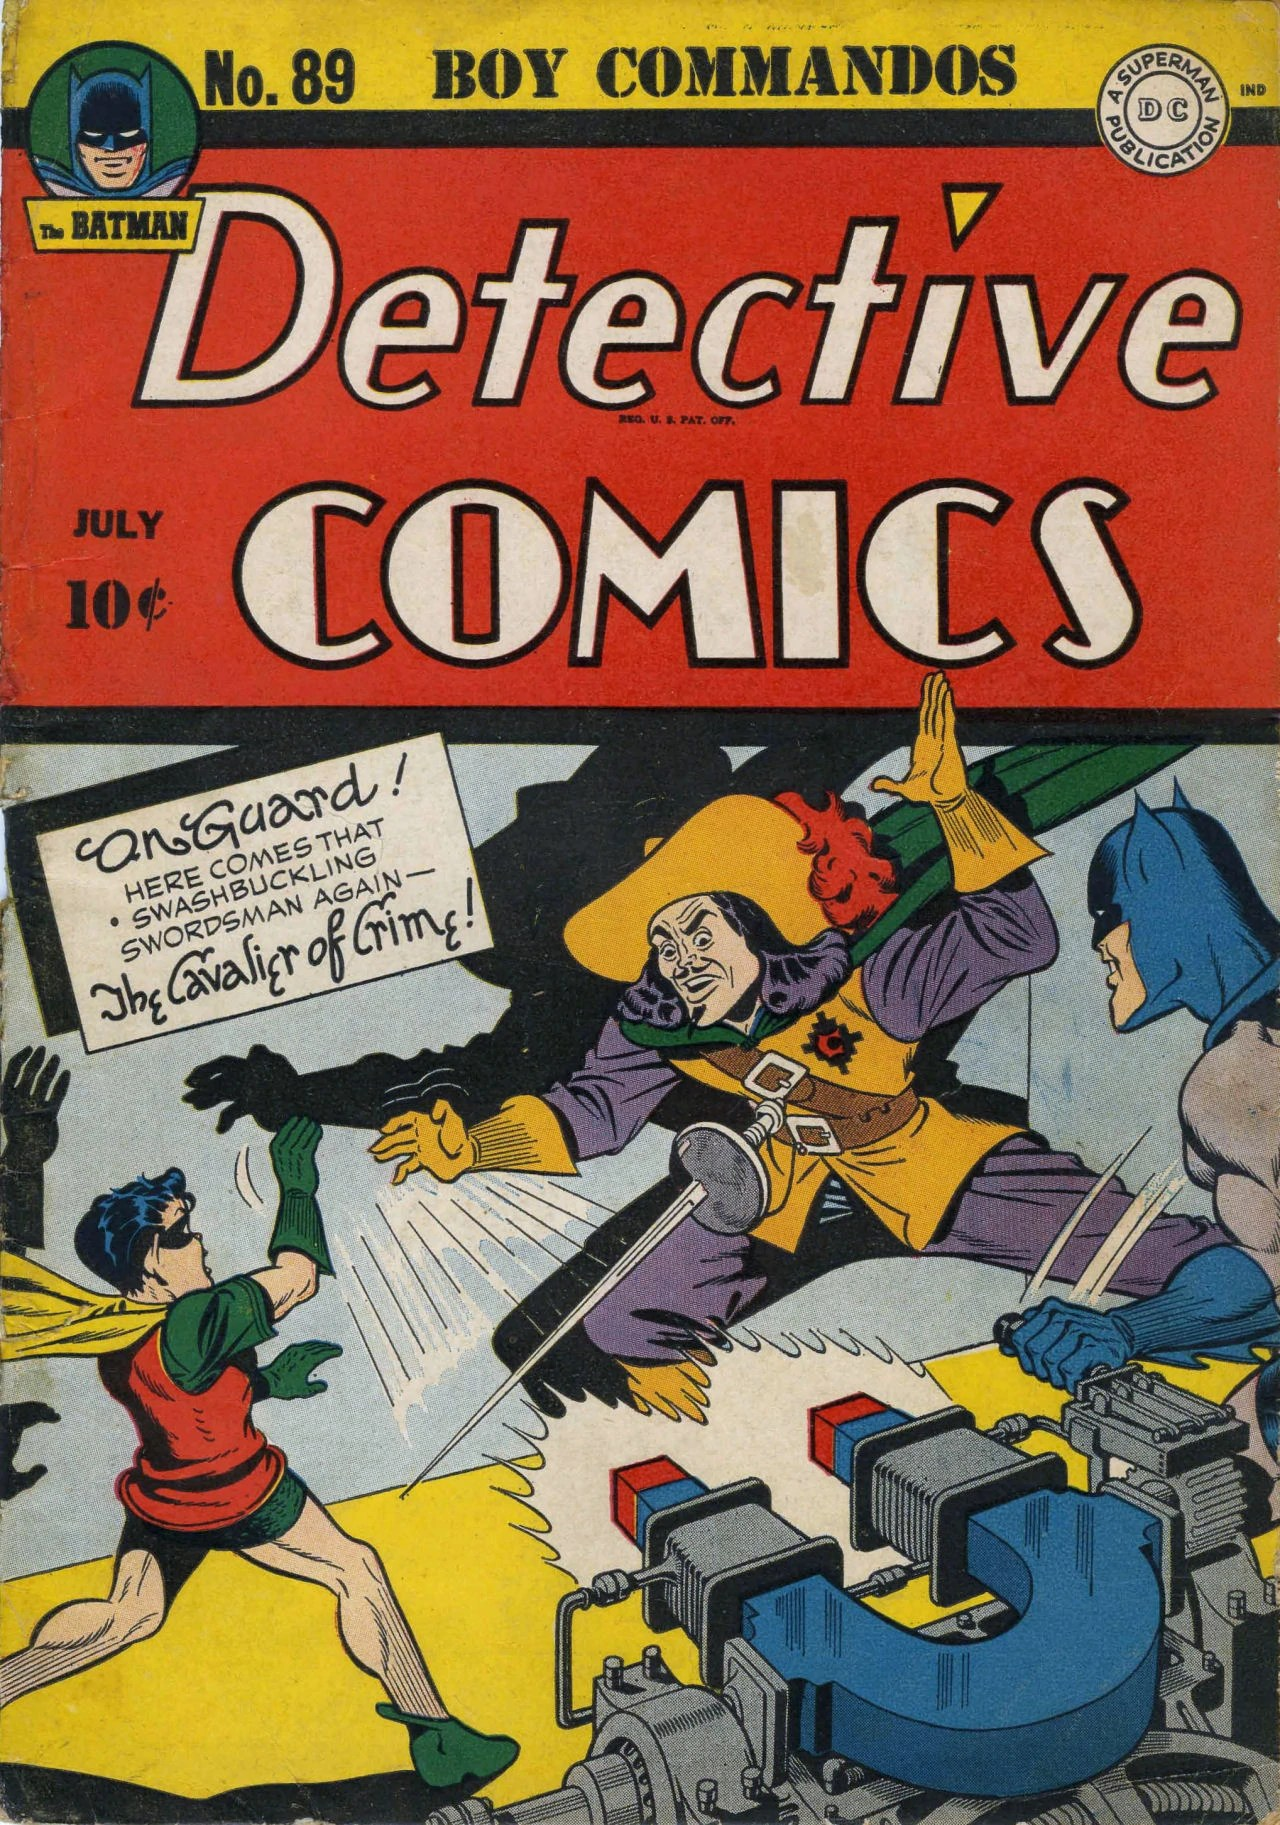 On Guard? Was it against the Comics Code to include French on the cover back then?